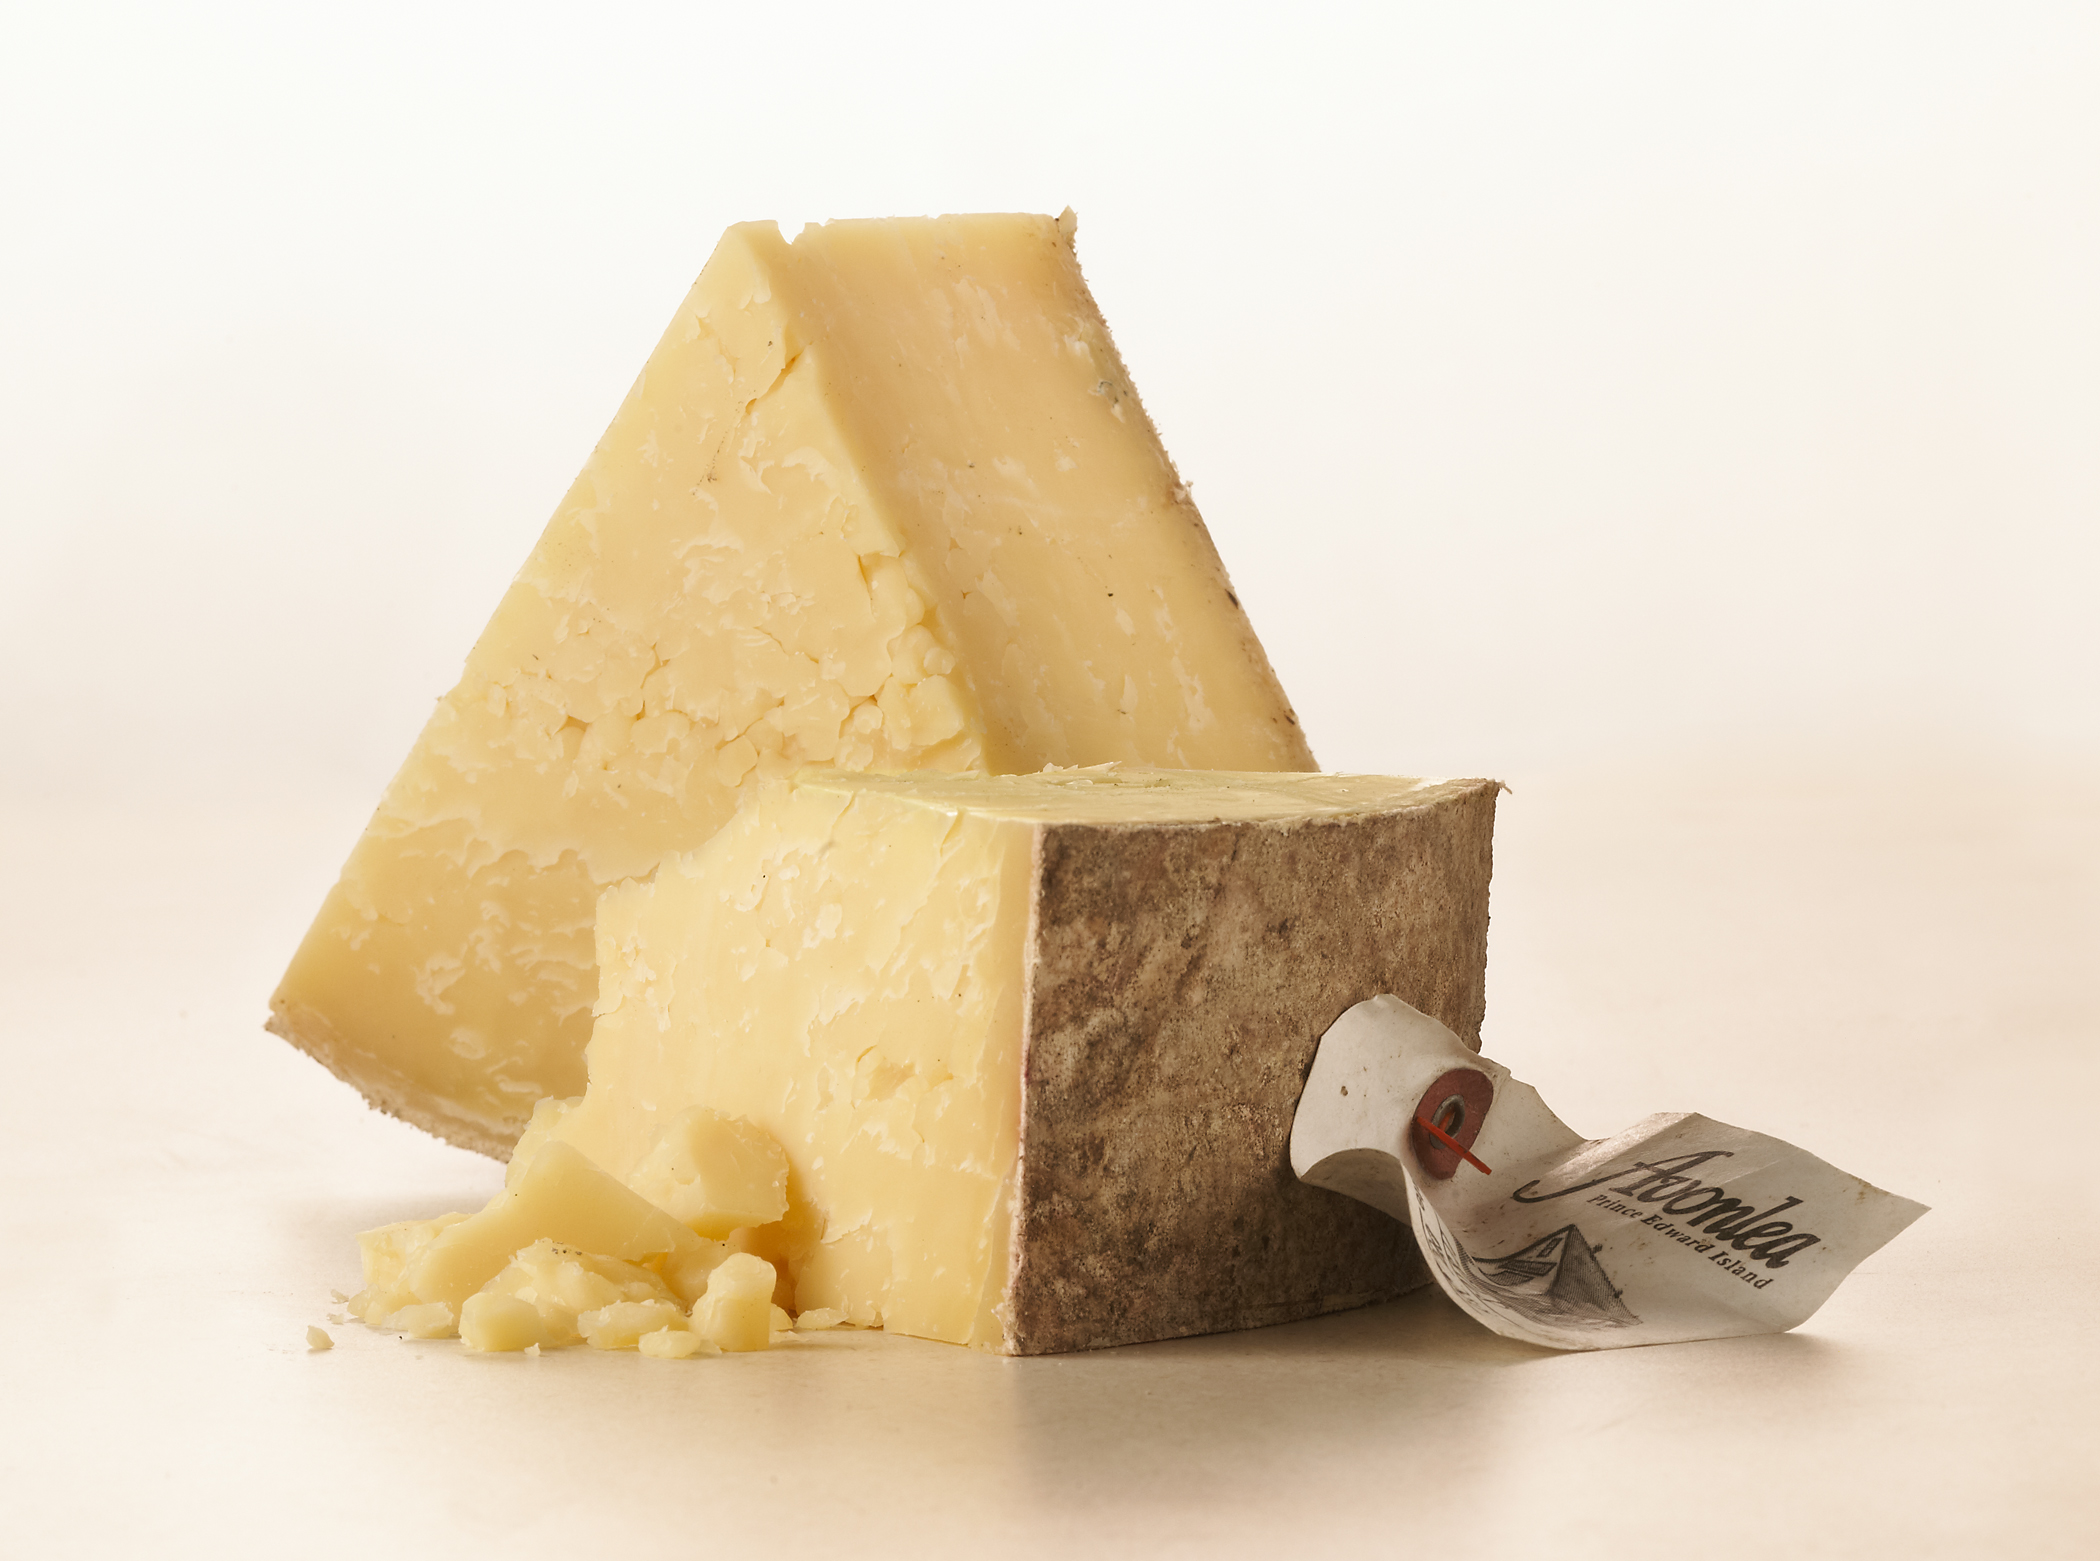 Avonlea Clothbound Cheddar: 2016 Canadian Cheese of the Year.